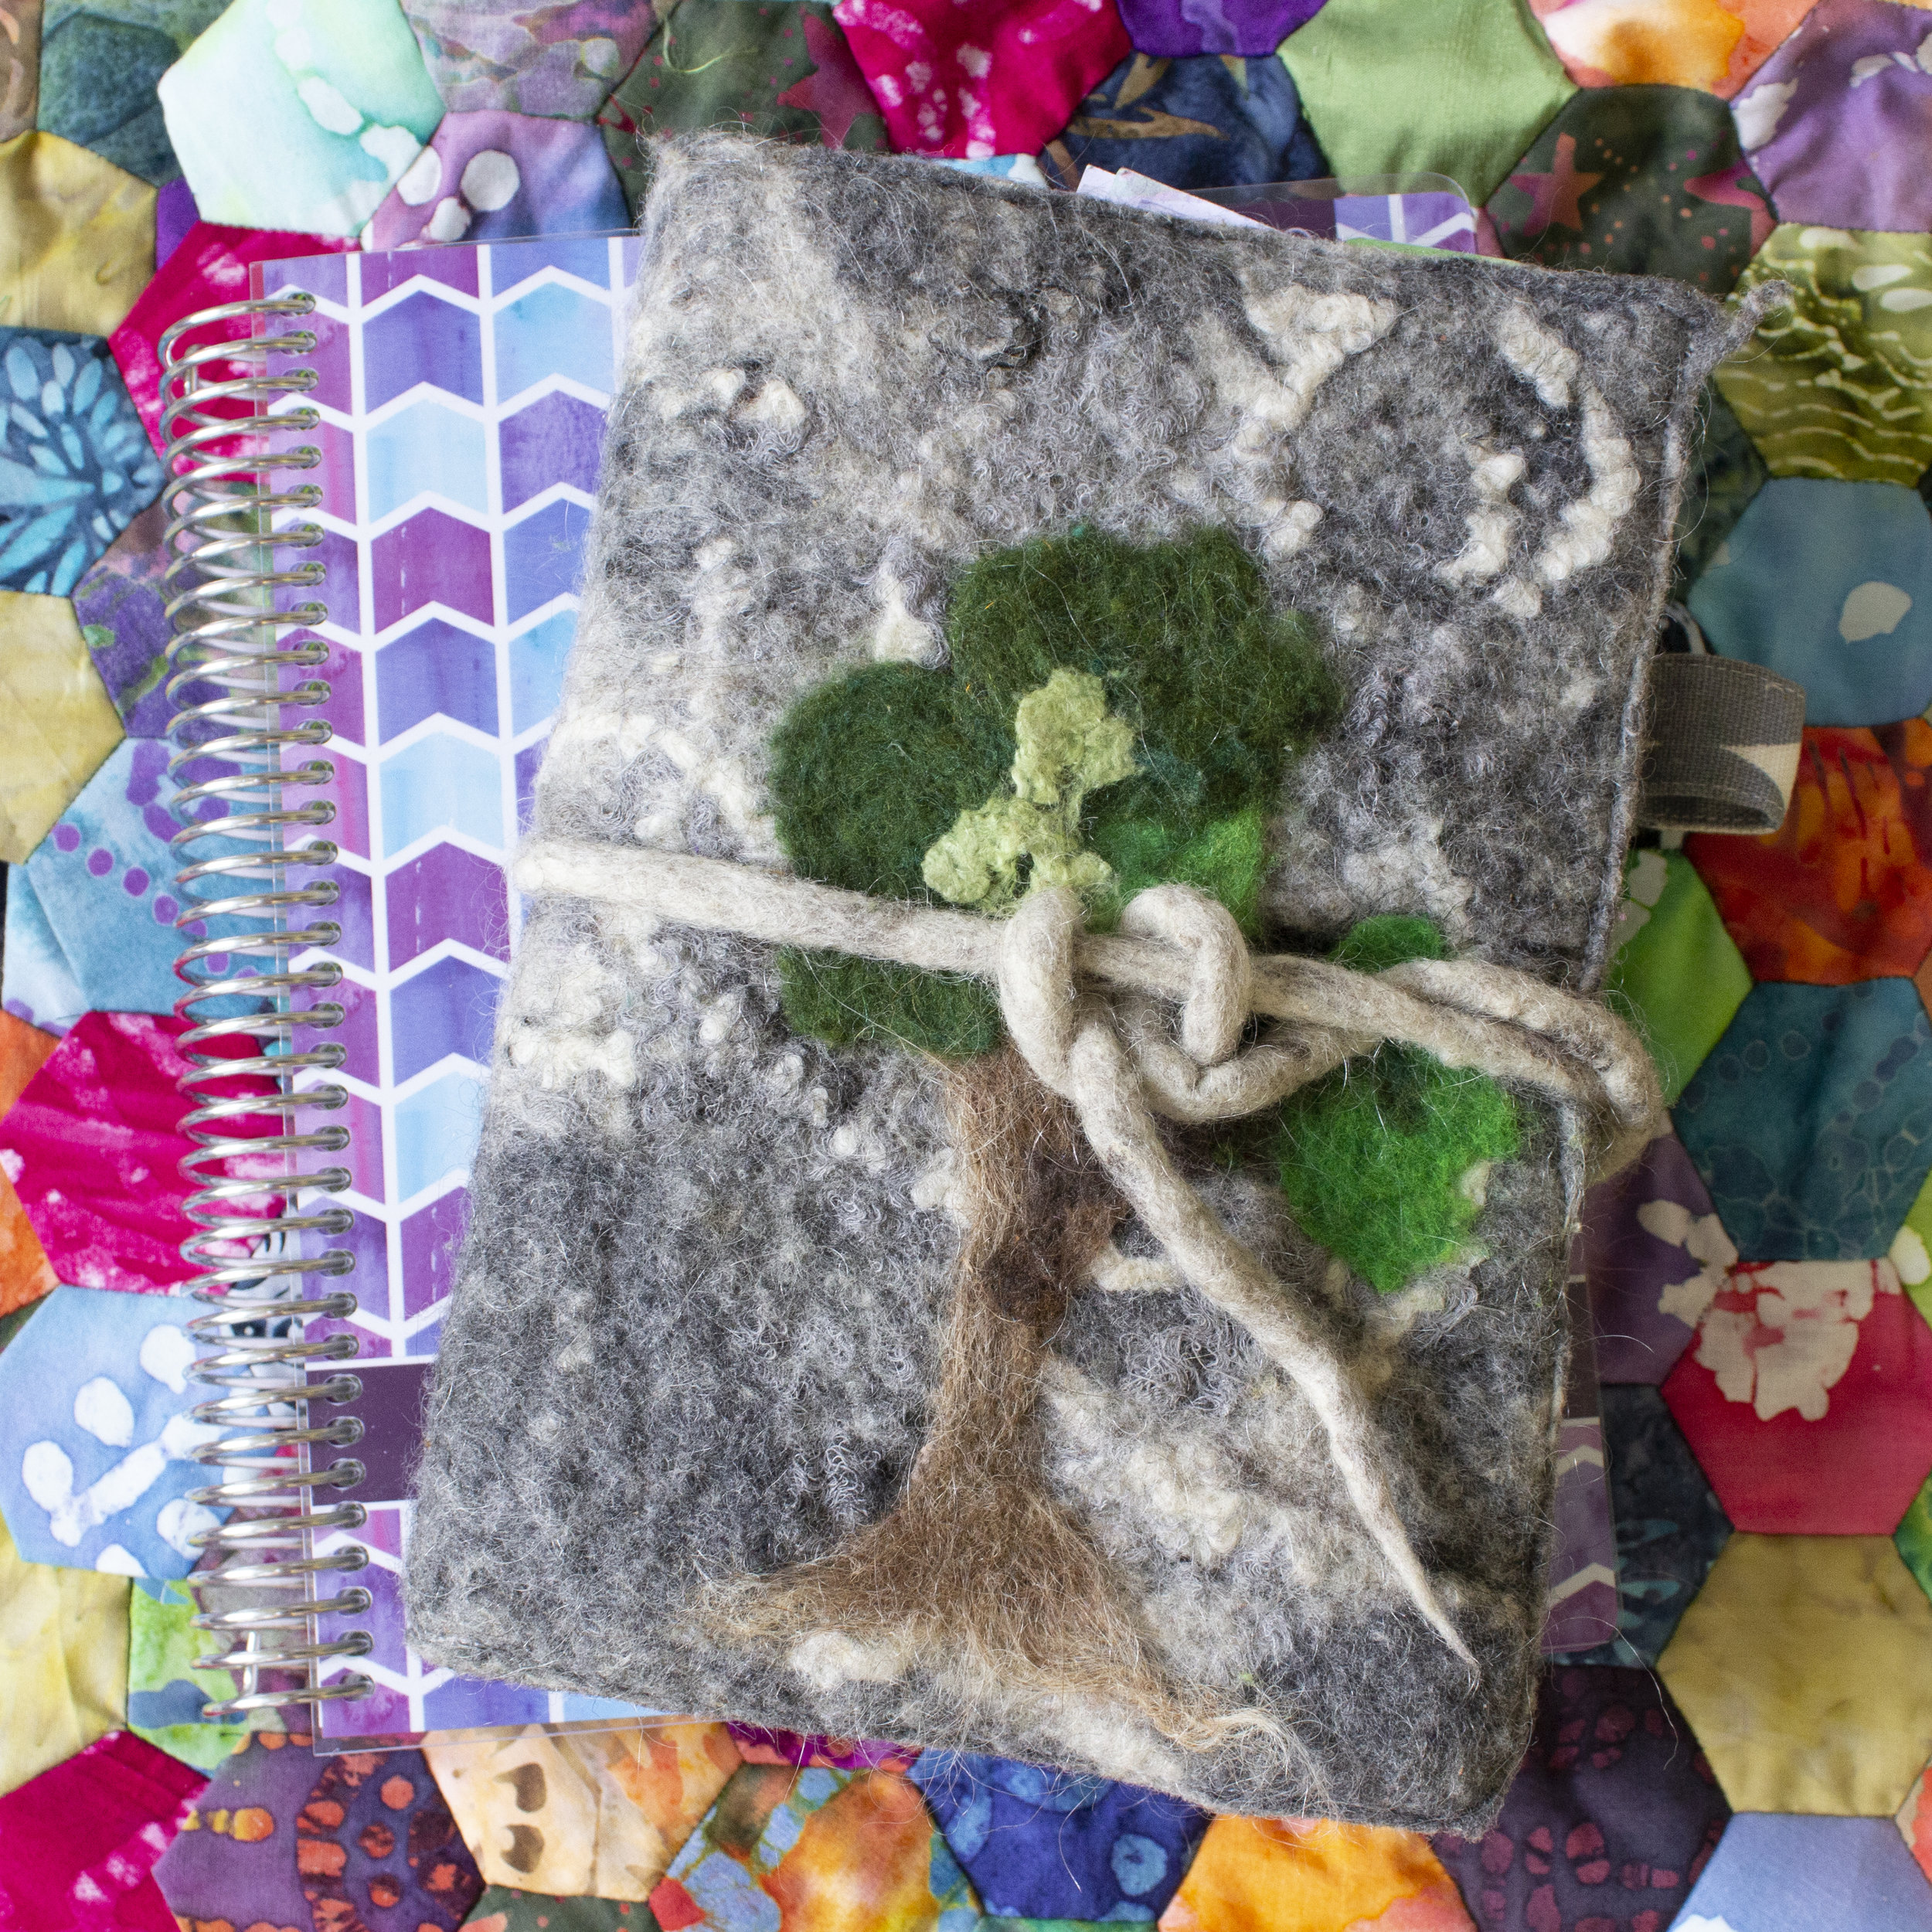 My planners - homeschool planner from Plum Paper Planner on the bottom, and my Hobonichi Cousin on top with my first felt journal cover prototype. The tree was a later addition that my daughter felted when she was 5.